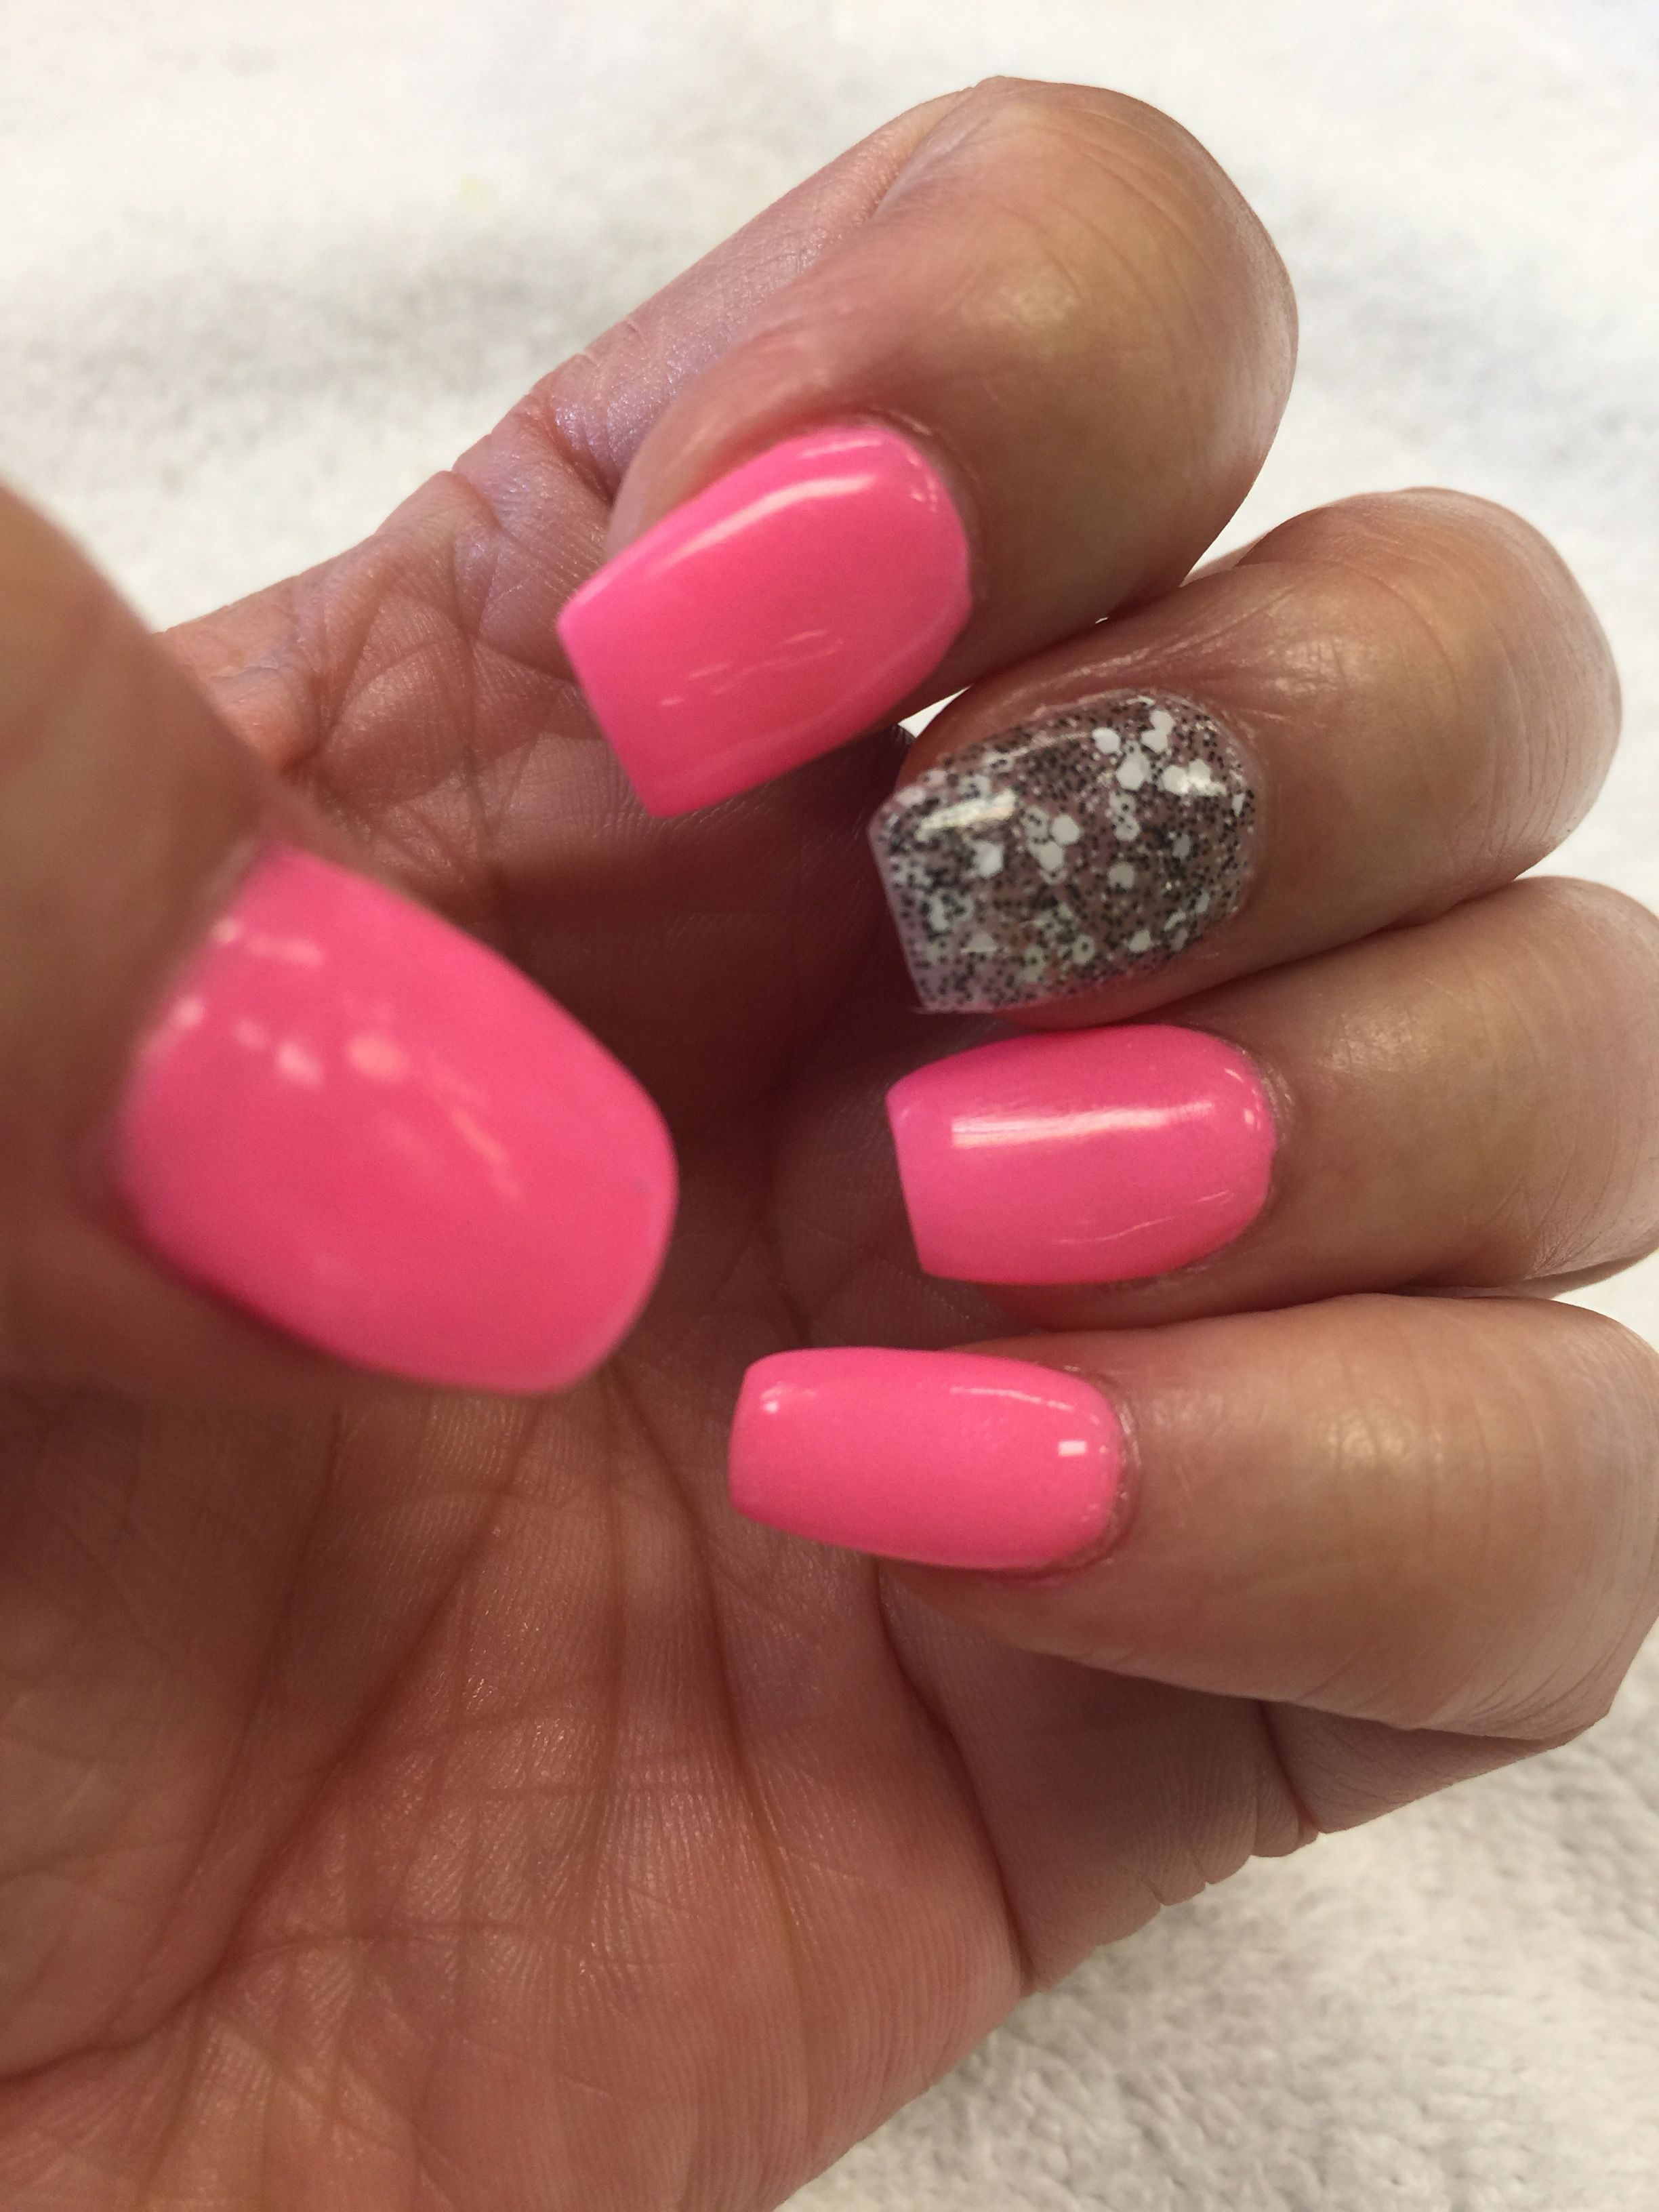 20 Fresh Acrylic Nails Uk Hot Pink For Spring And Summer 20 Fresh Acrylic Nails Uk Acrylic Nails Na Summer Acrylic Nails Pink Nails Bright Pink Nail Polish